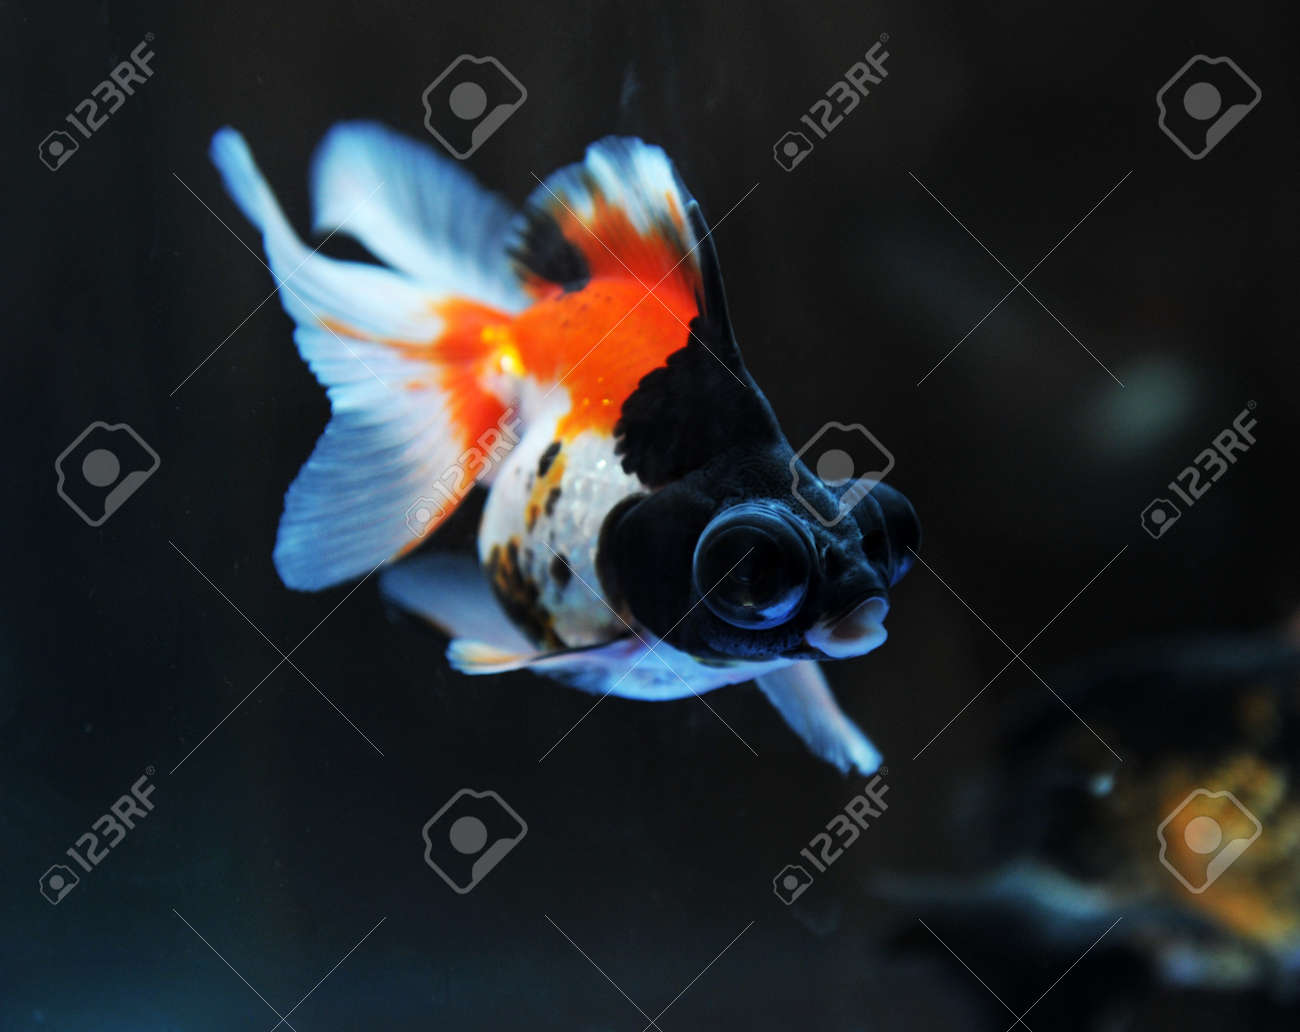 funny goldfish in fishbowl with funny action. Stock Photo - 13647426